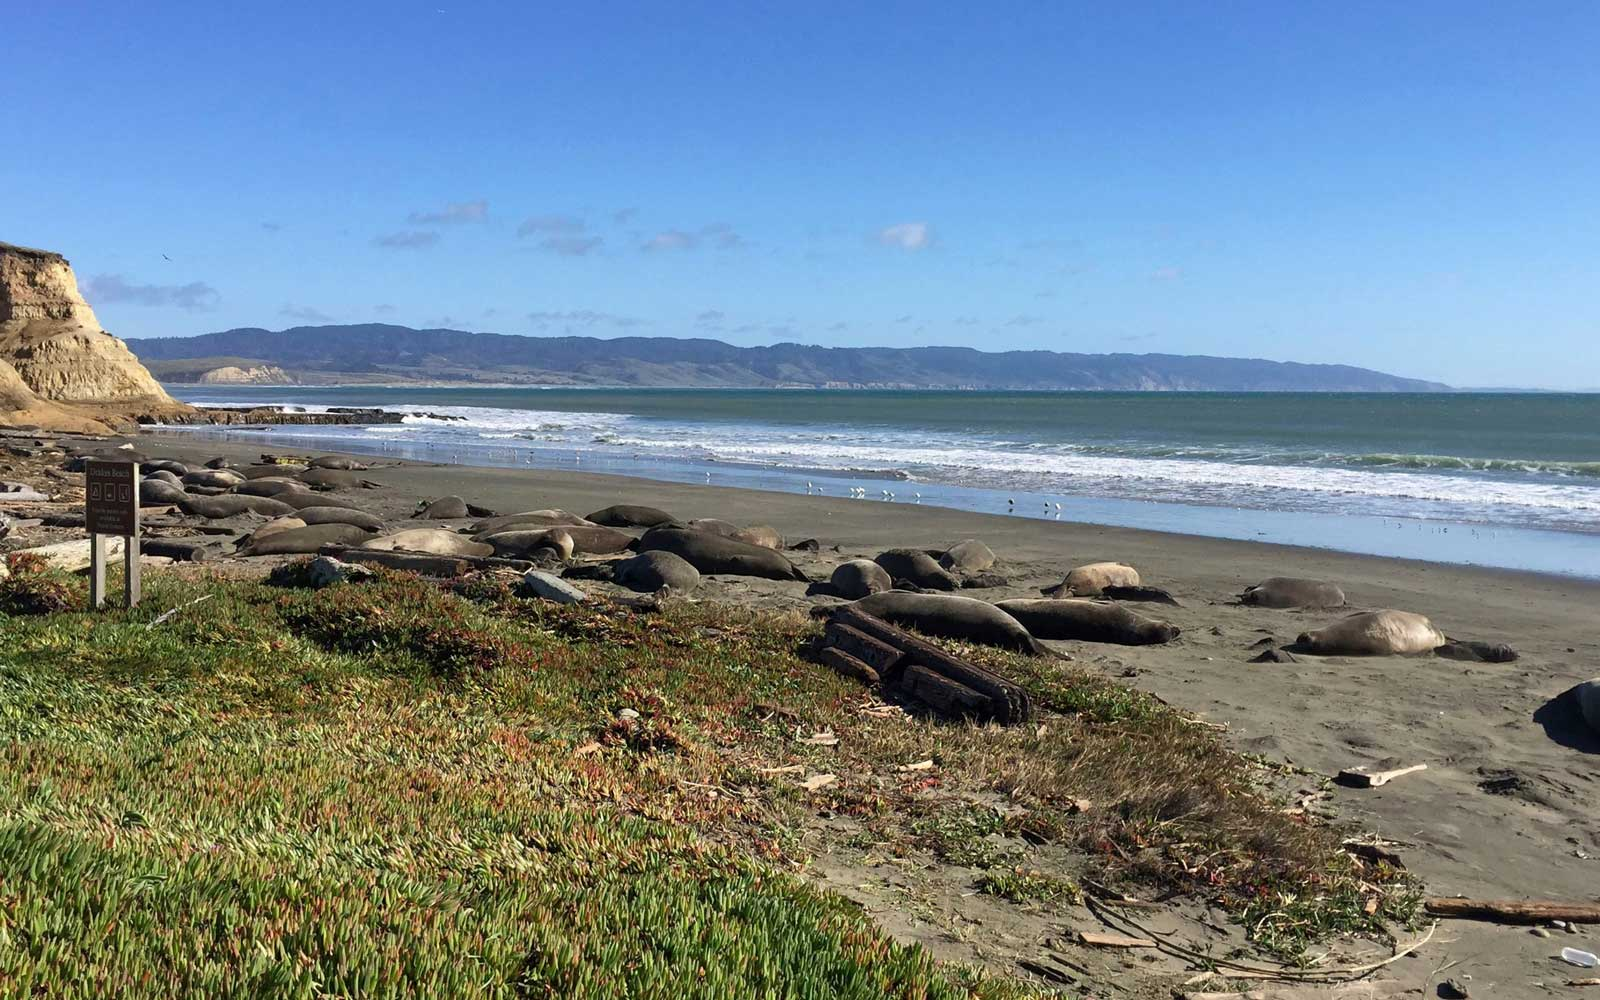 Jan. 21, 2019, Point Reyes National Seashore's colony of elephant seals that took over a beach in Northern California